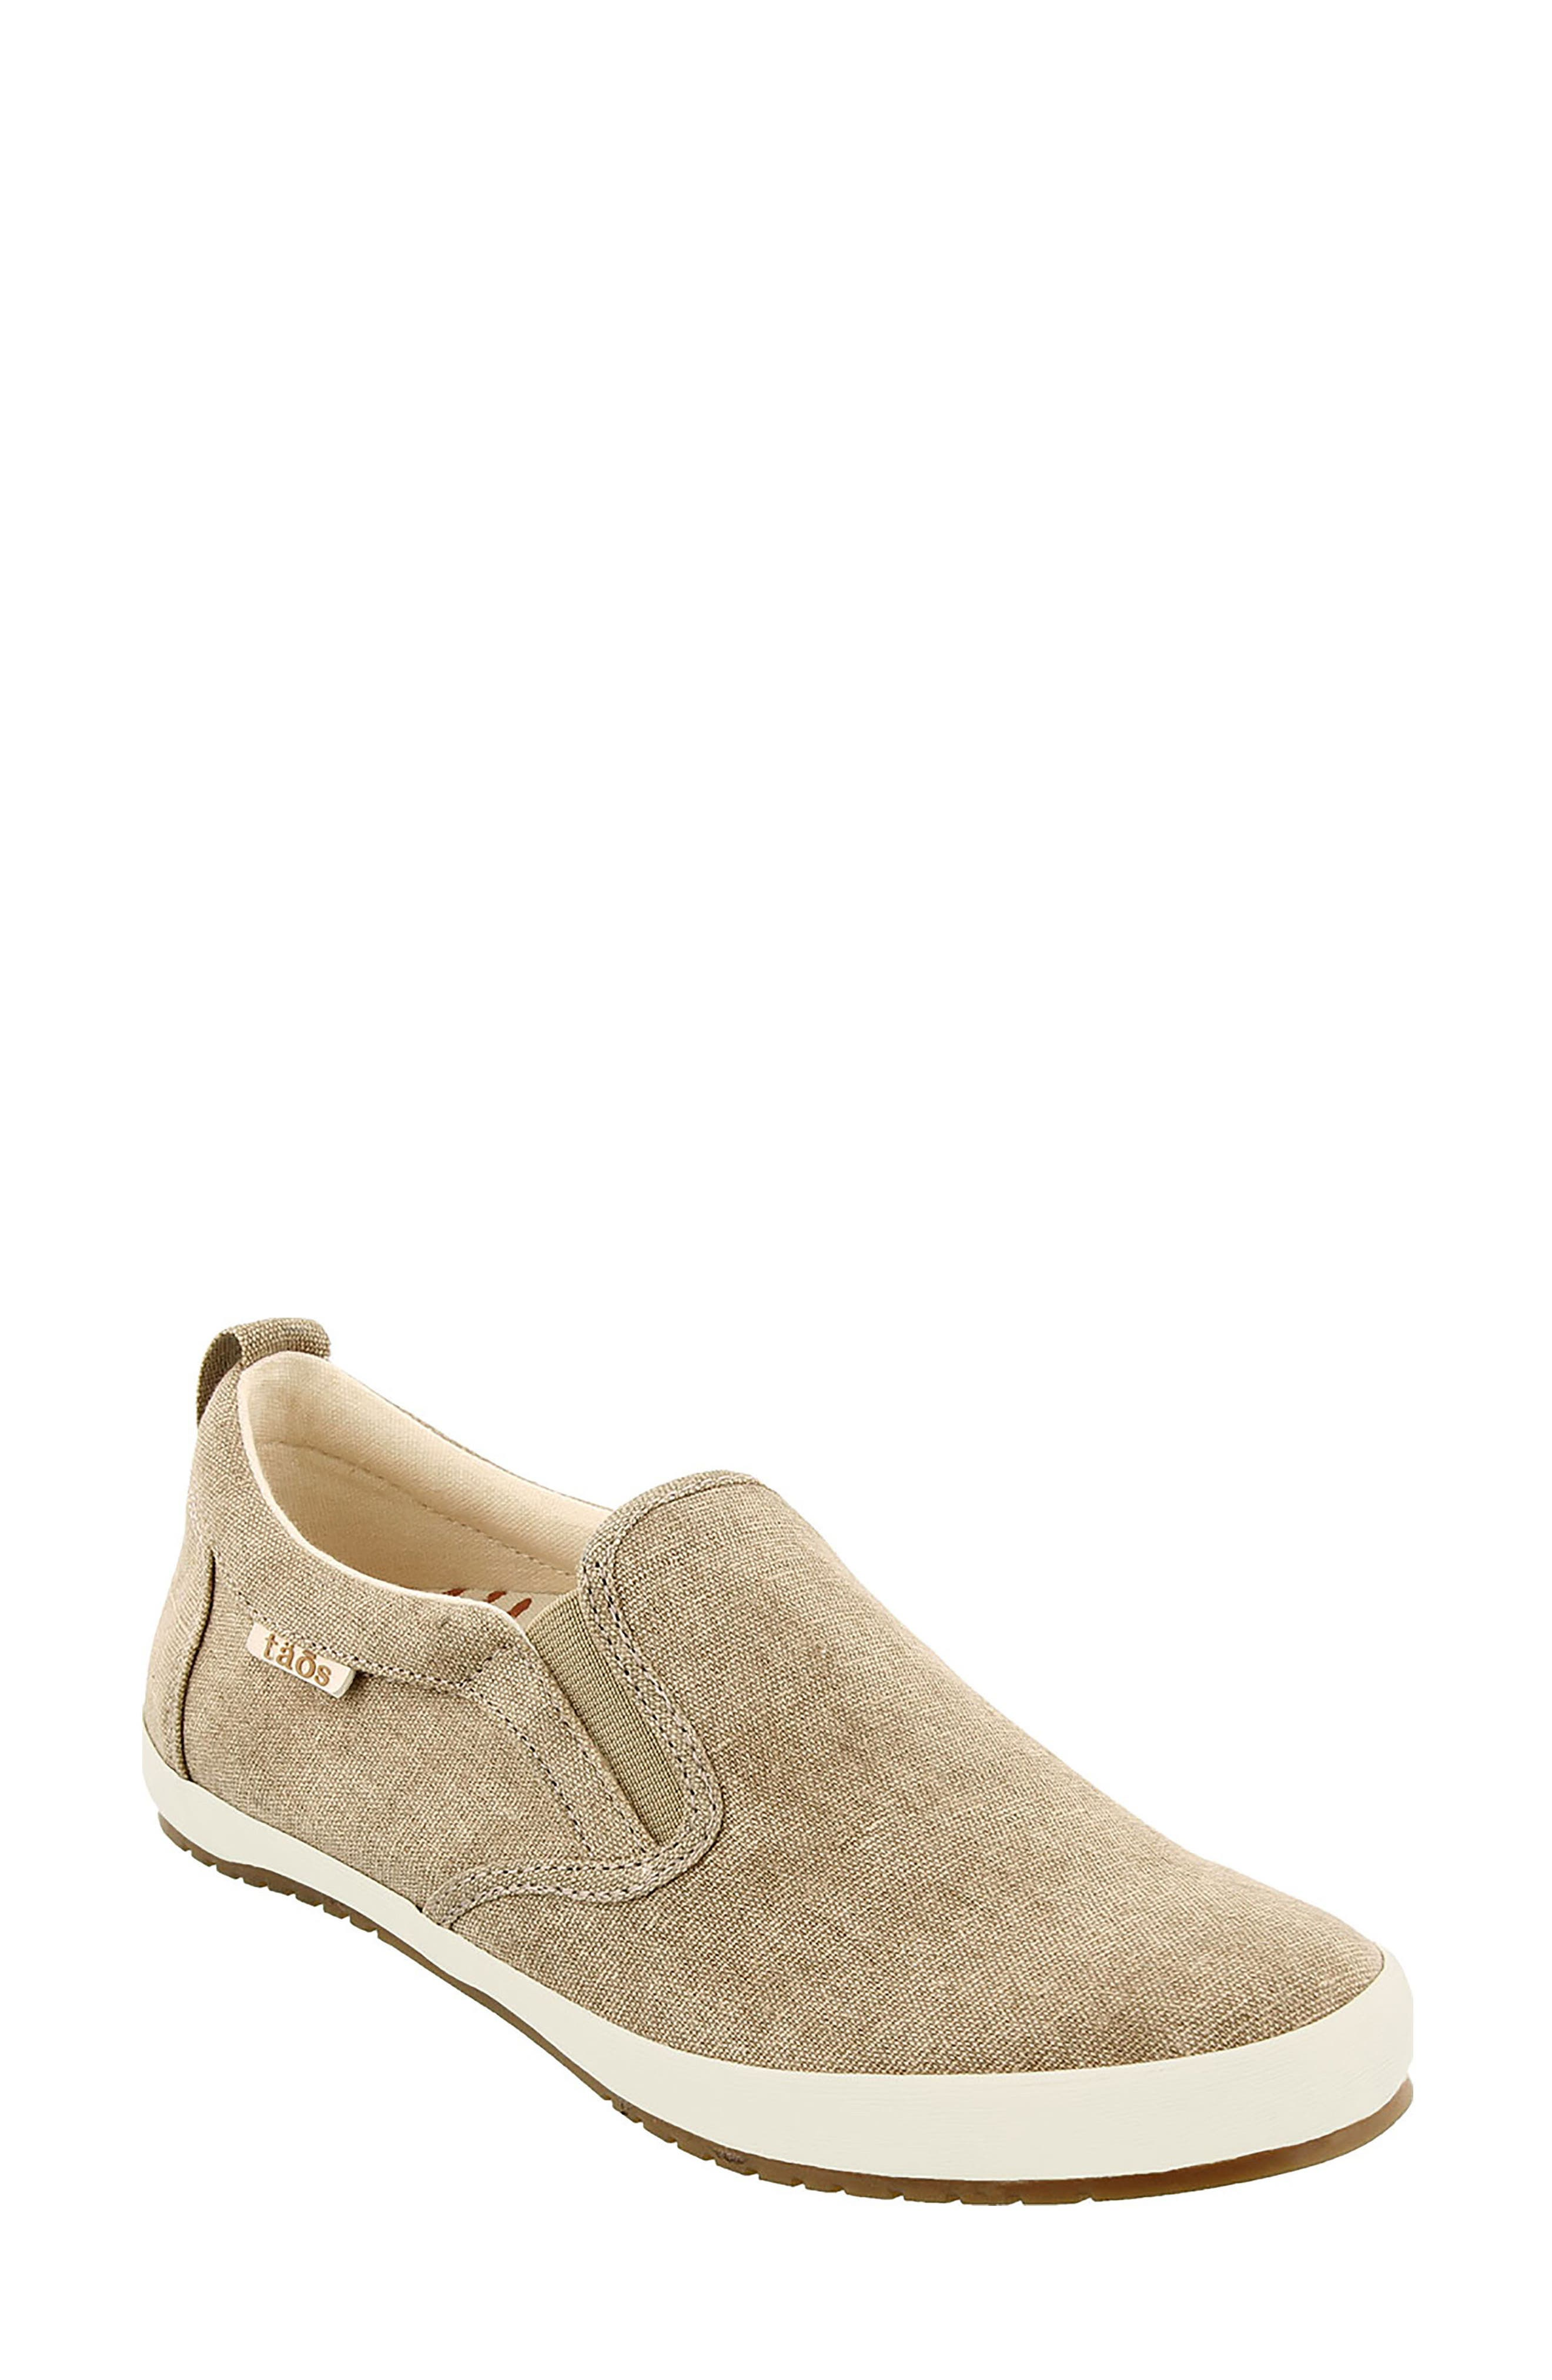 Dandy Slip-On Sneaker,                         Main,                         color, Khaki Washed Canvas